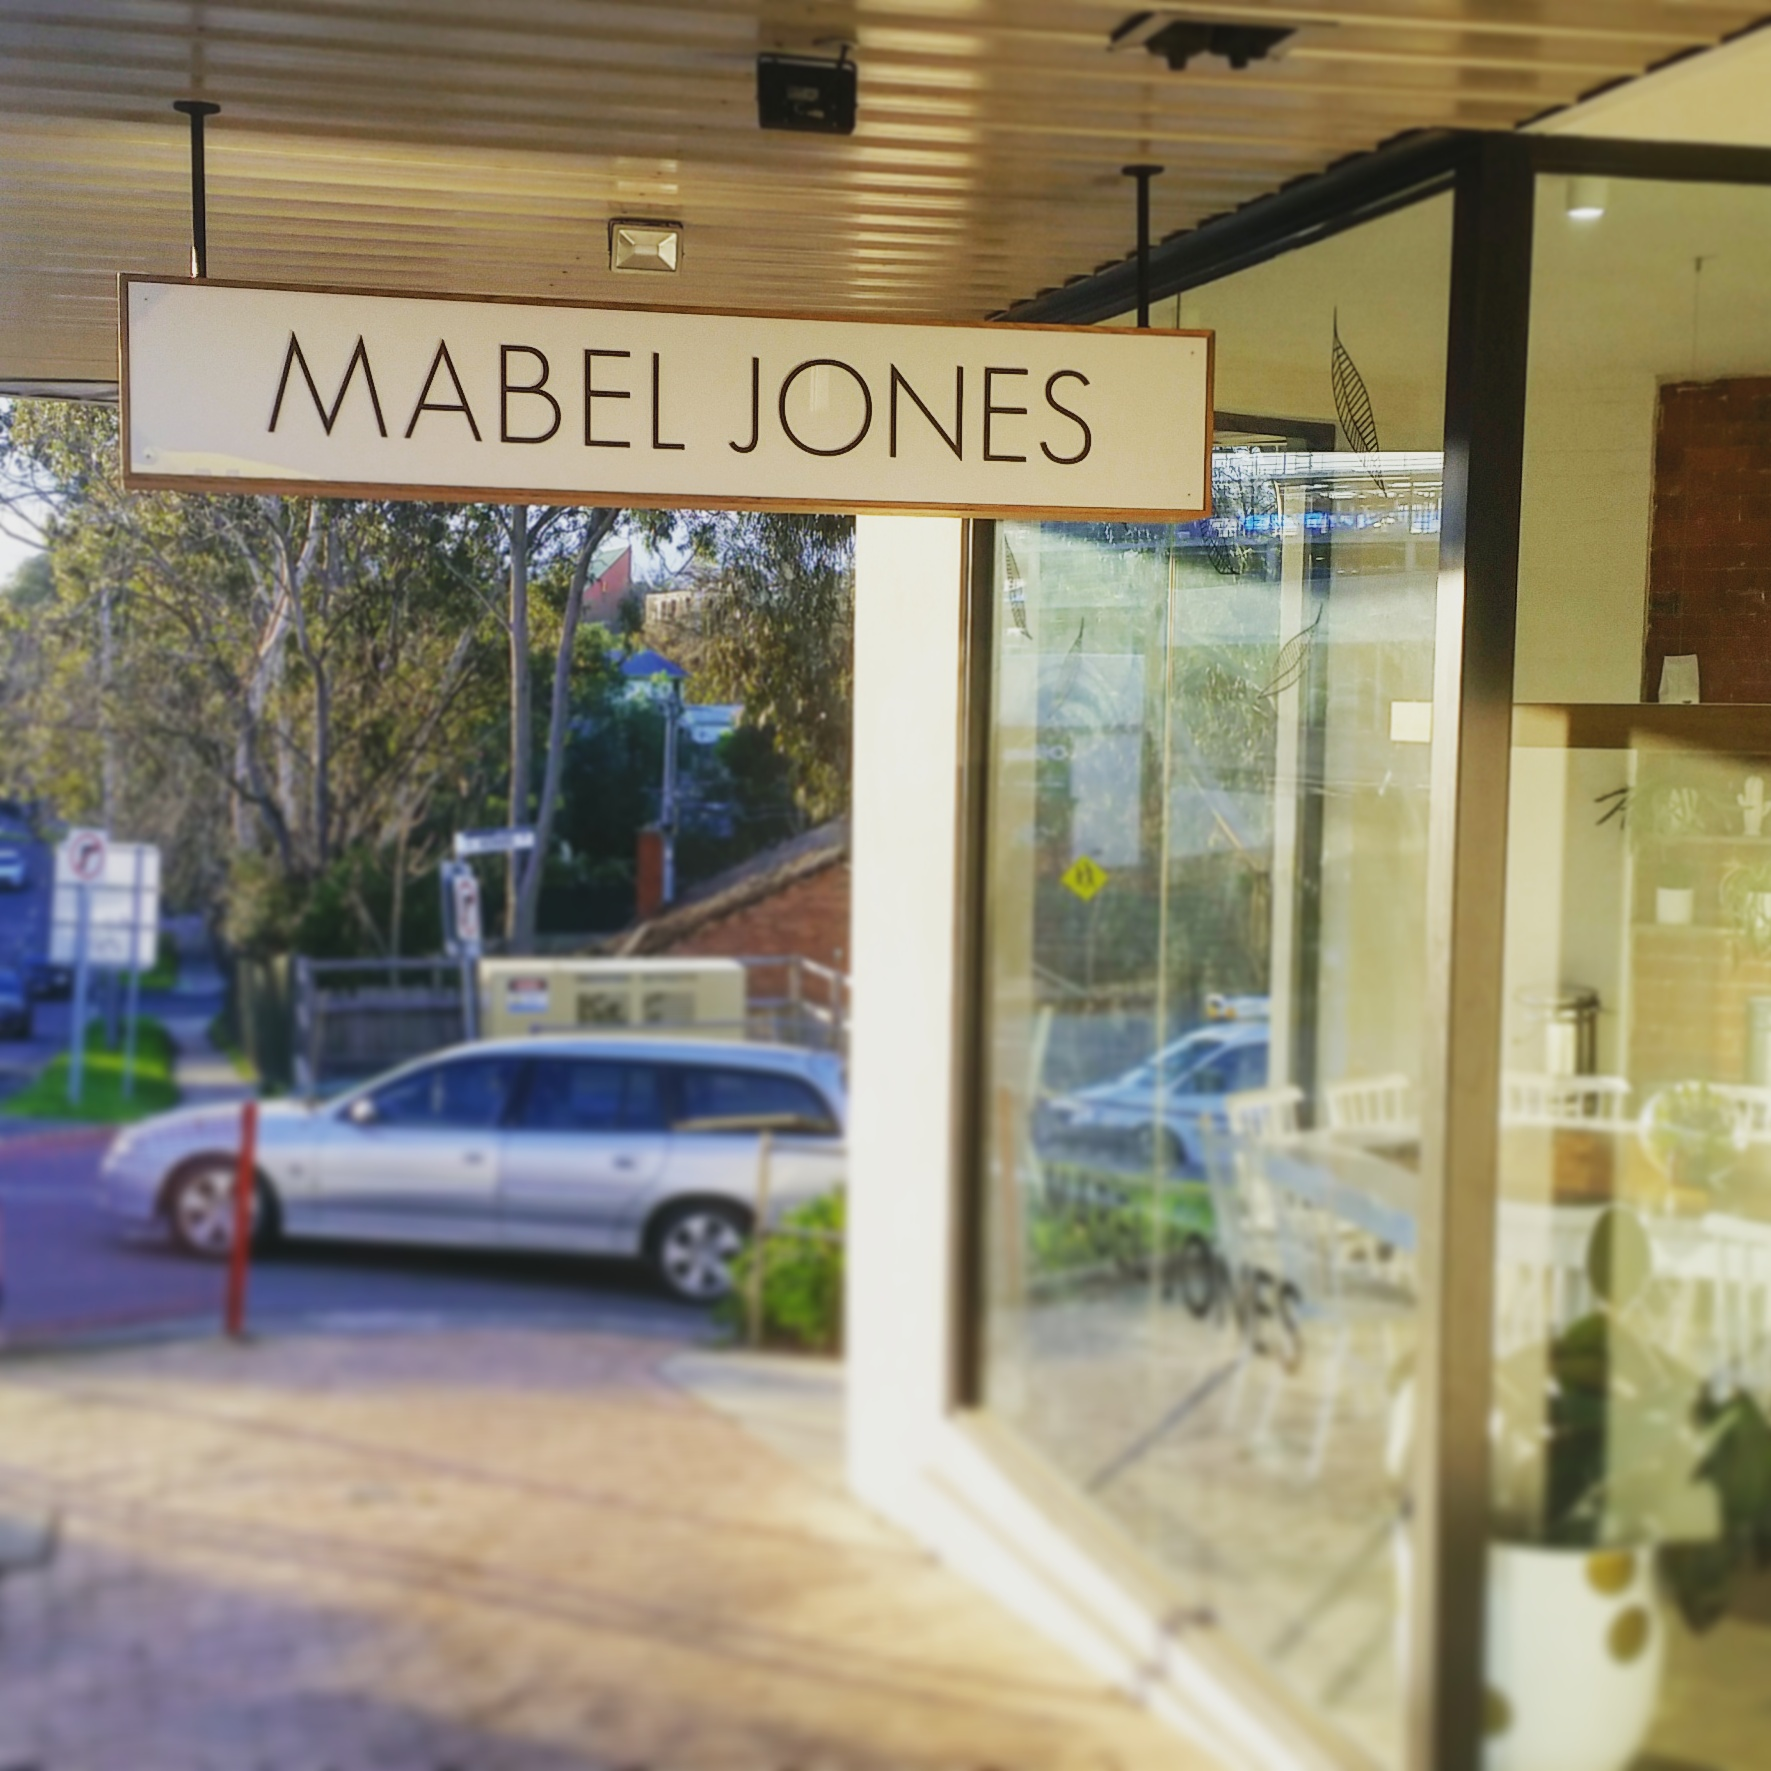 Mabel Jones Cafe signage